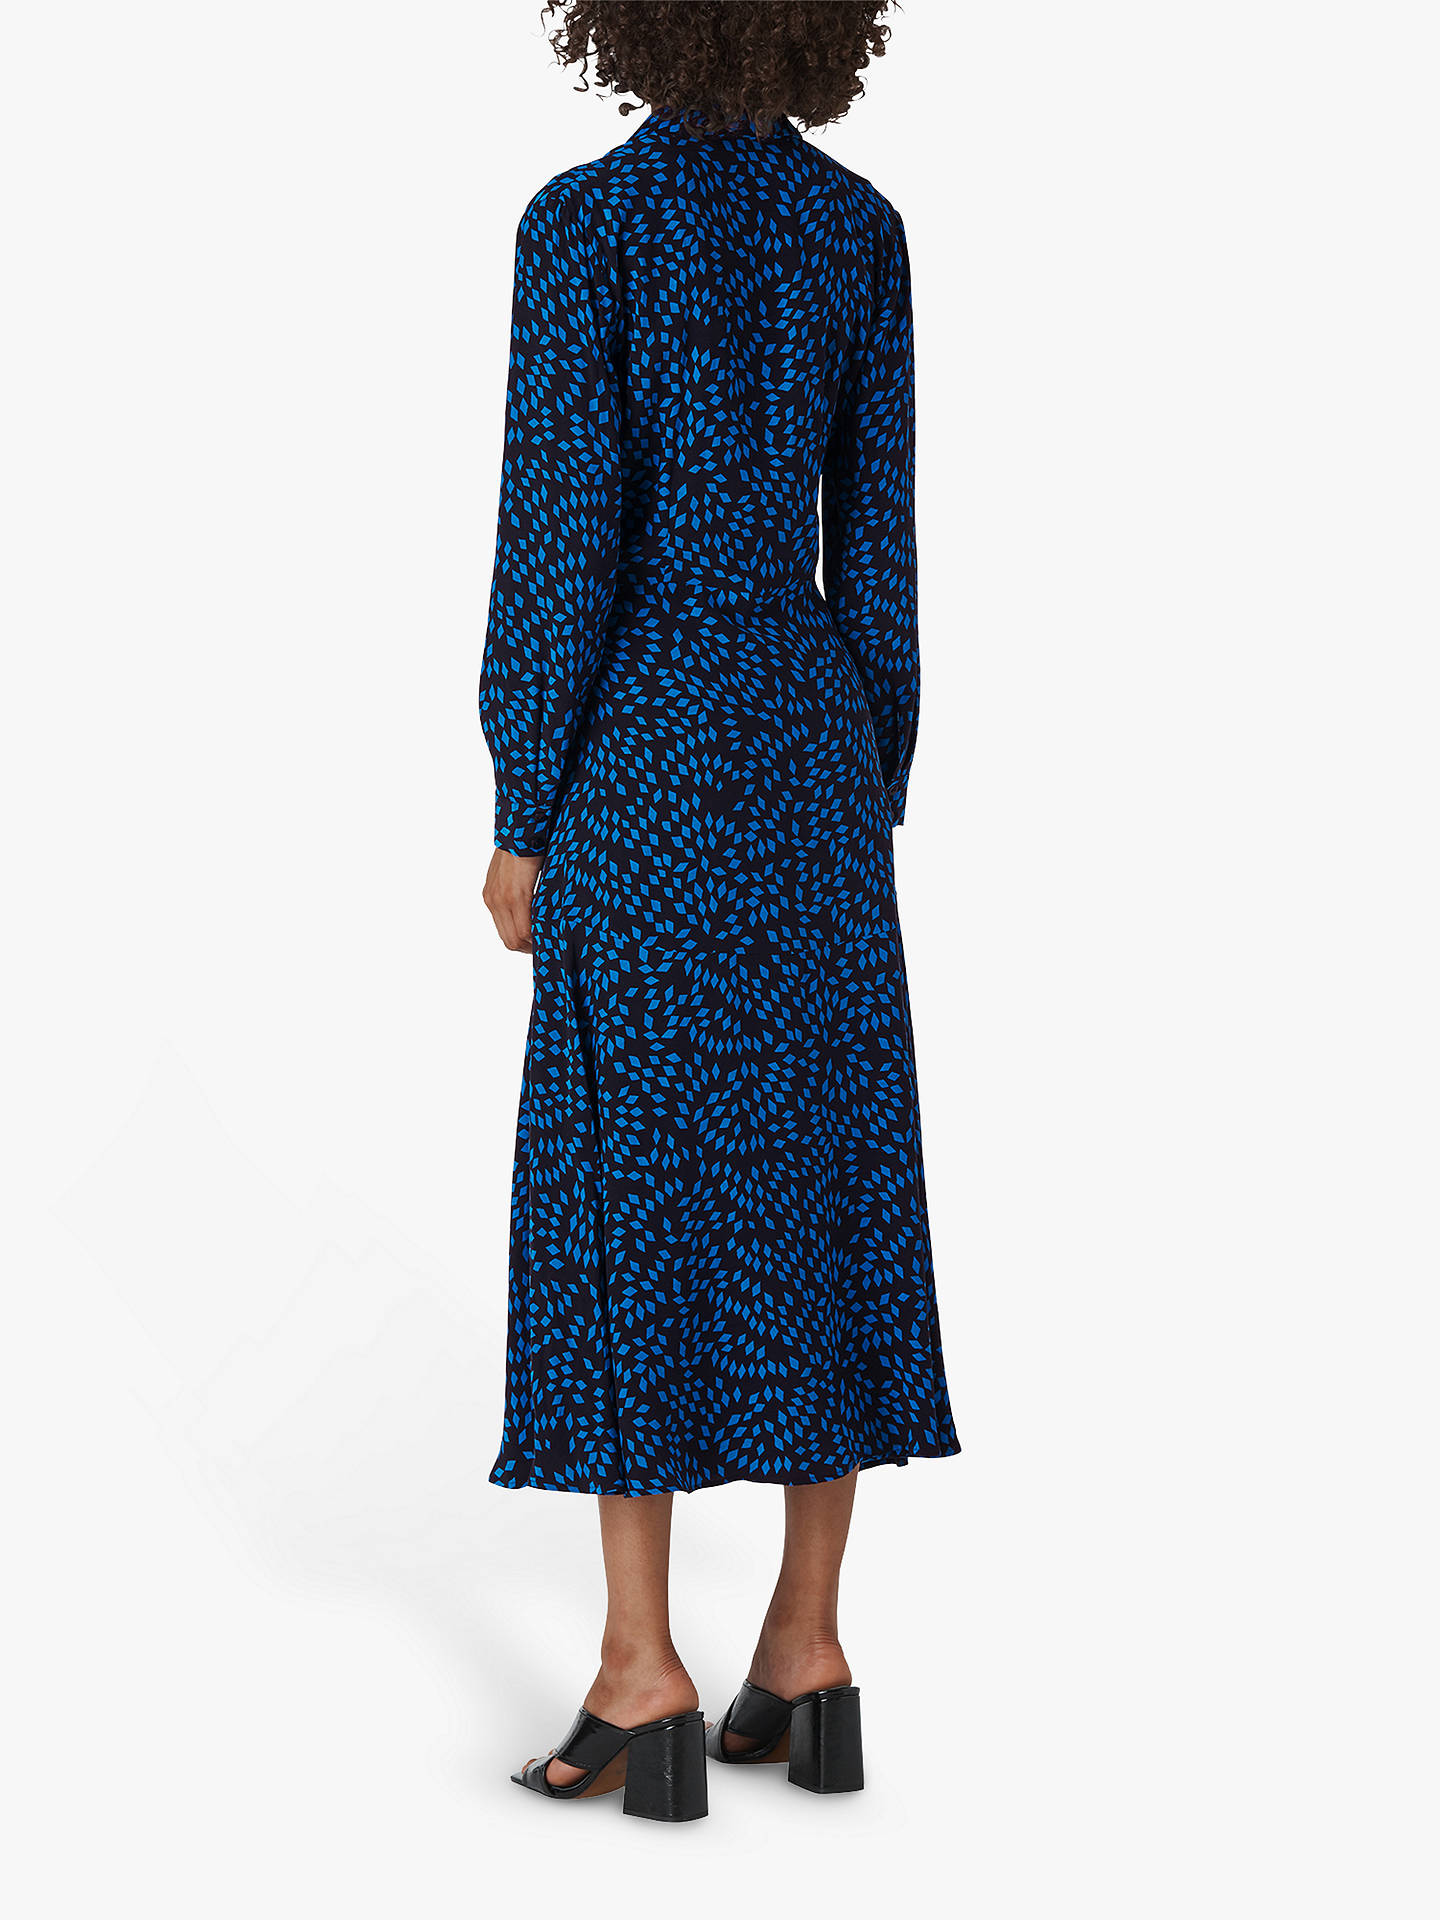 Buy Whistles Scattered Diamond Midi Shirt Dress, Blue/Multi, 6 Online at johnlewis.com